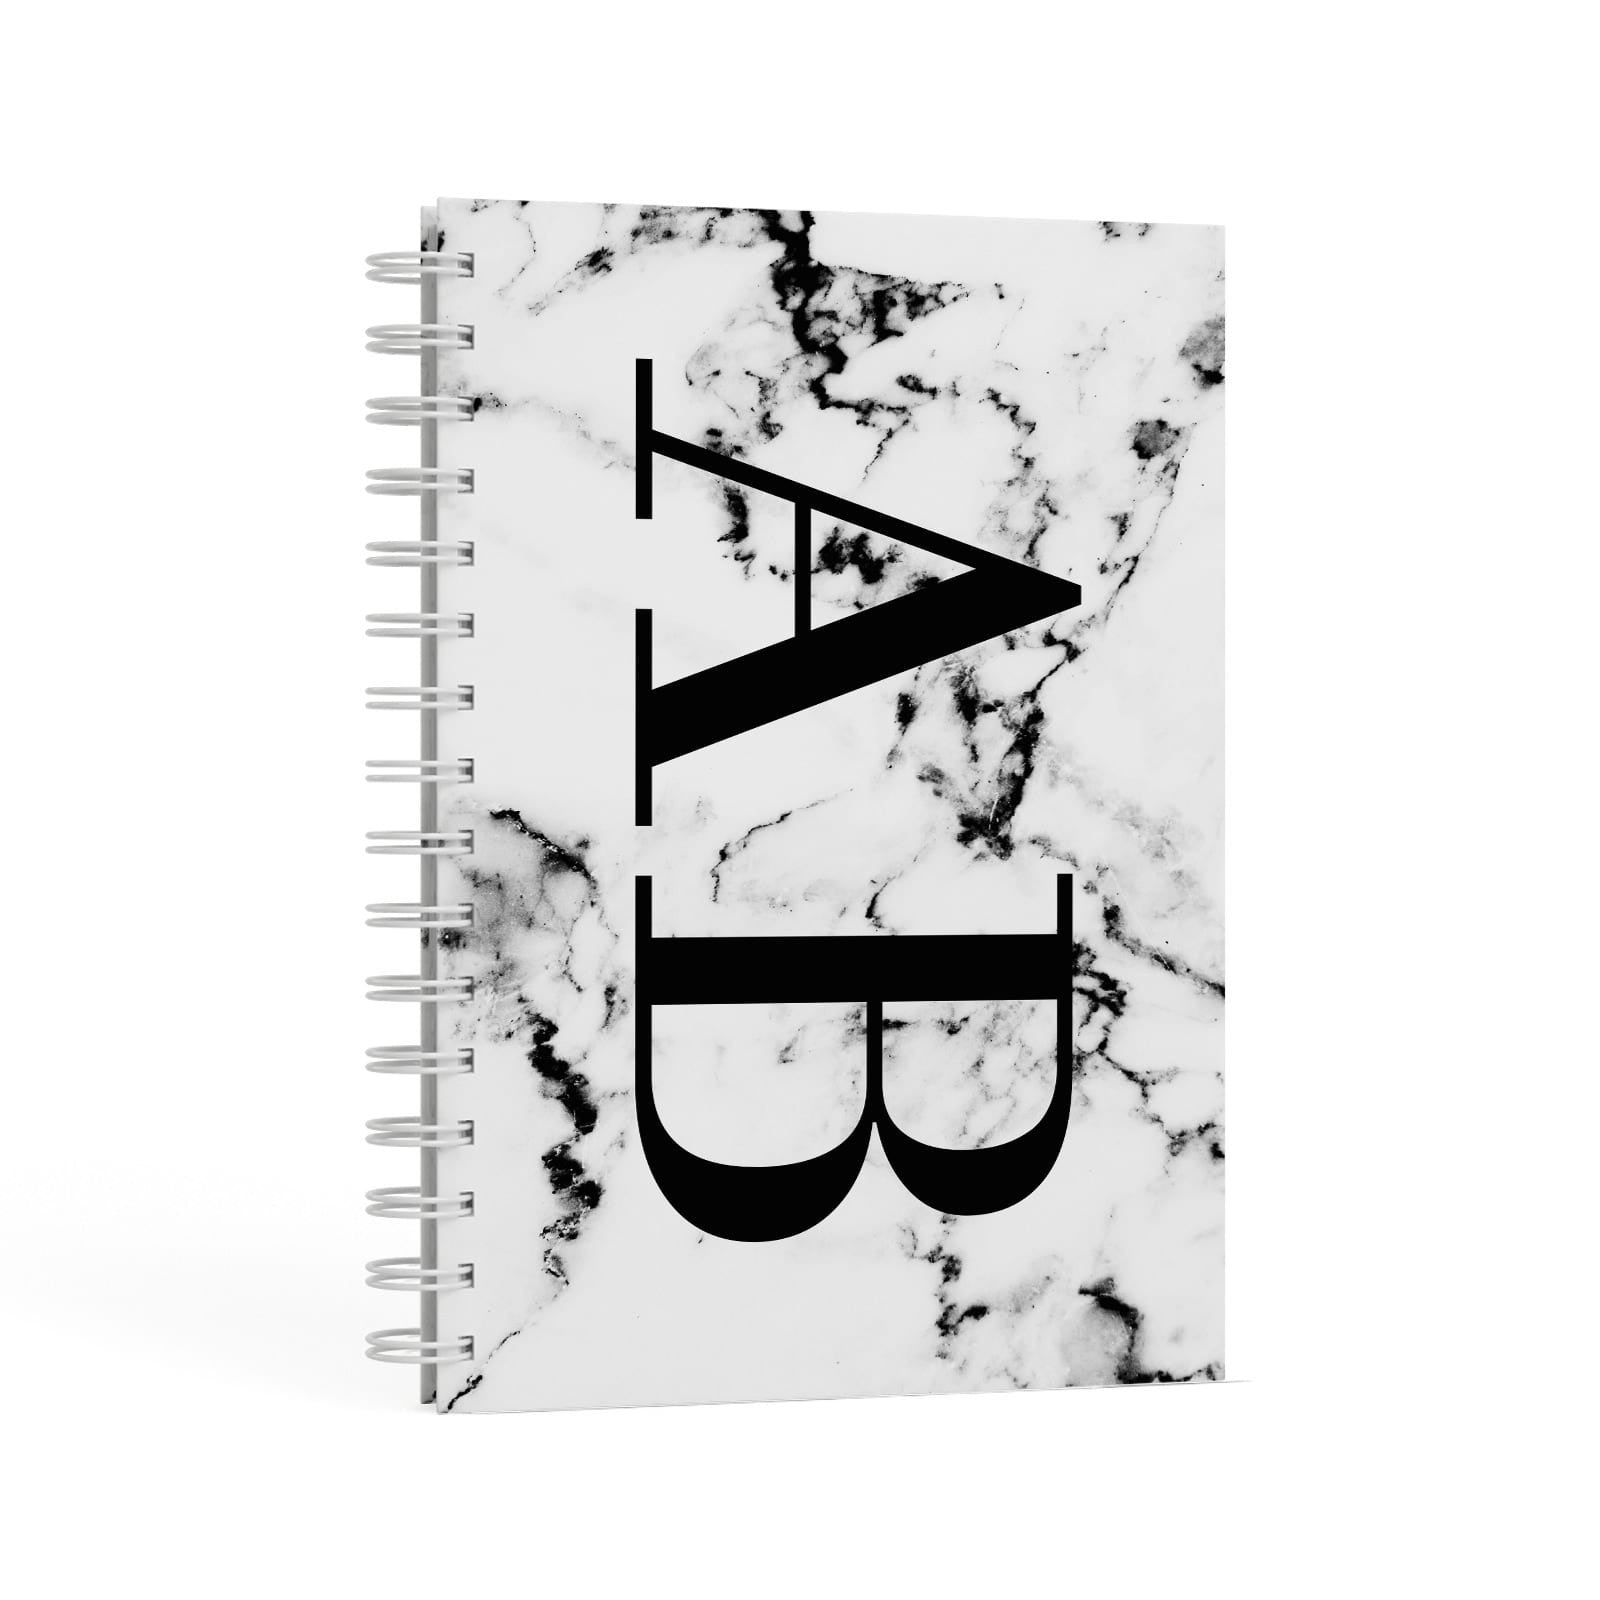 Marble Vertical Initials Personalised A5 Hardcover Notebook Second Side View